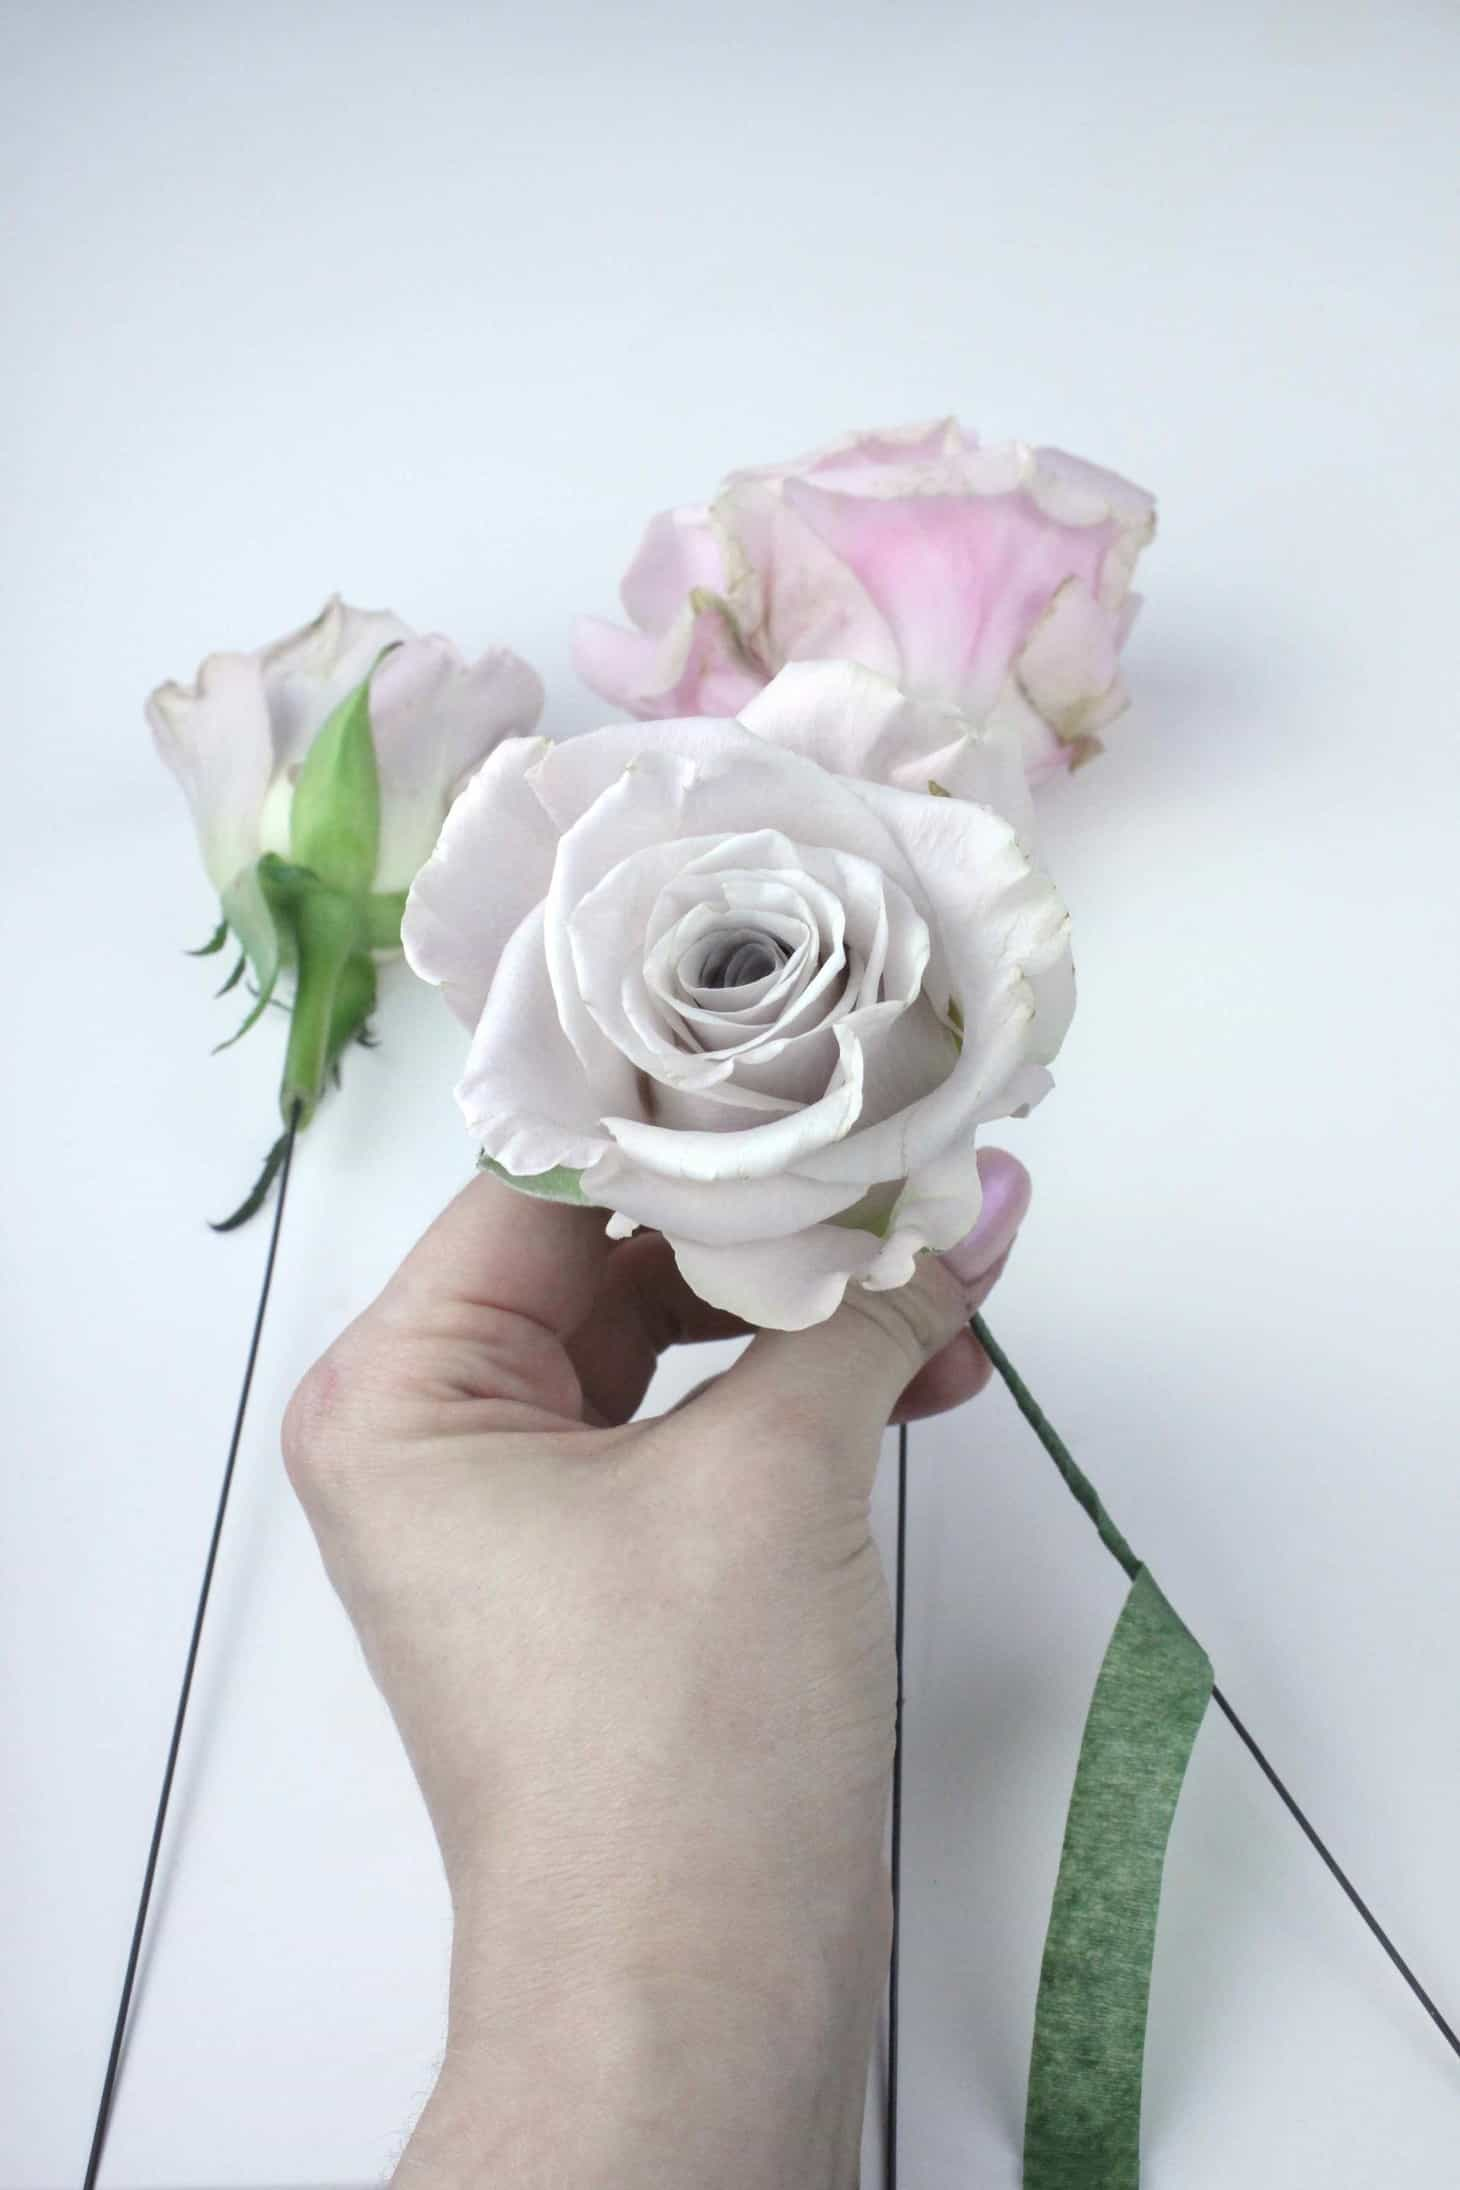 How to wire flowers like a florist - The Smell of Roses The Smell of ...